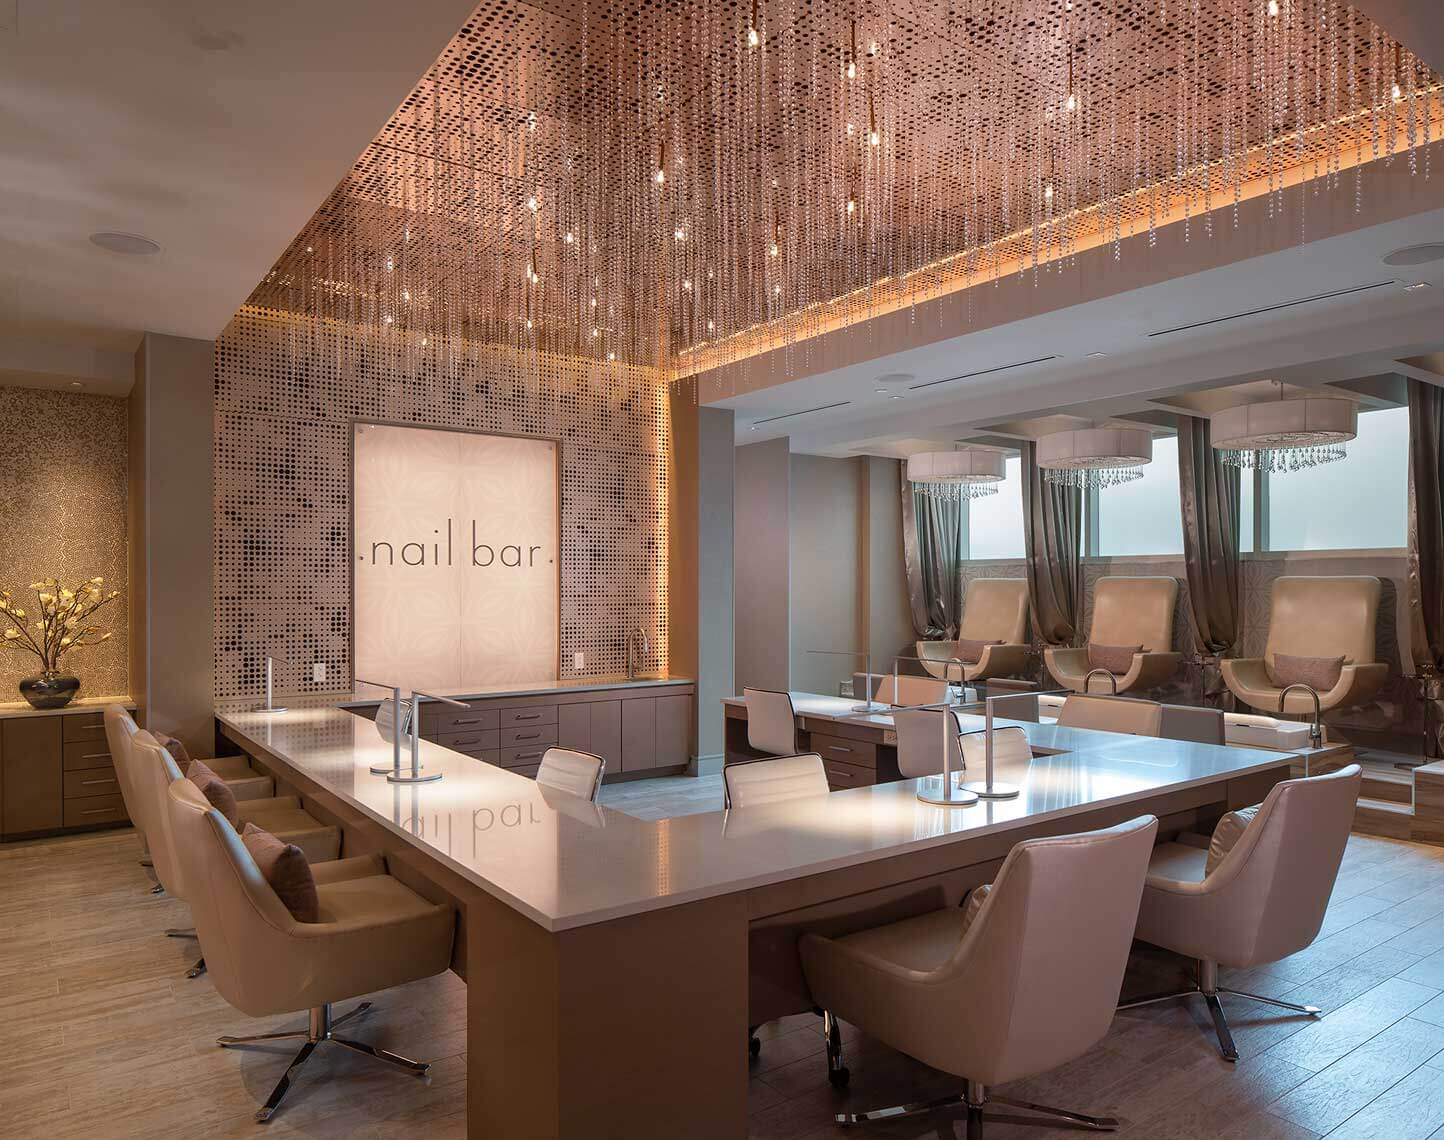 Wind Creek Wetumpka Spa Reserve | Nail Bar<br>Dale Partners / Triptek Construction / Lexi Design